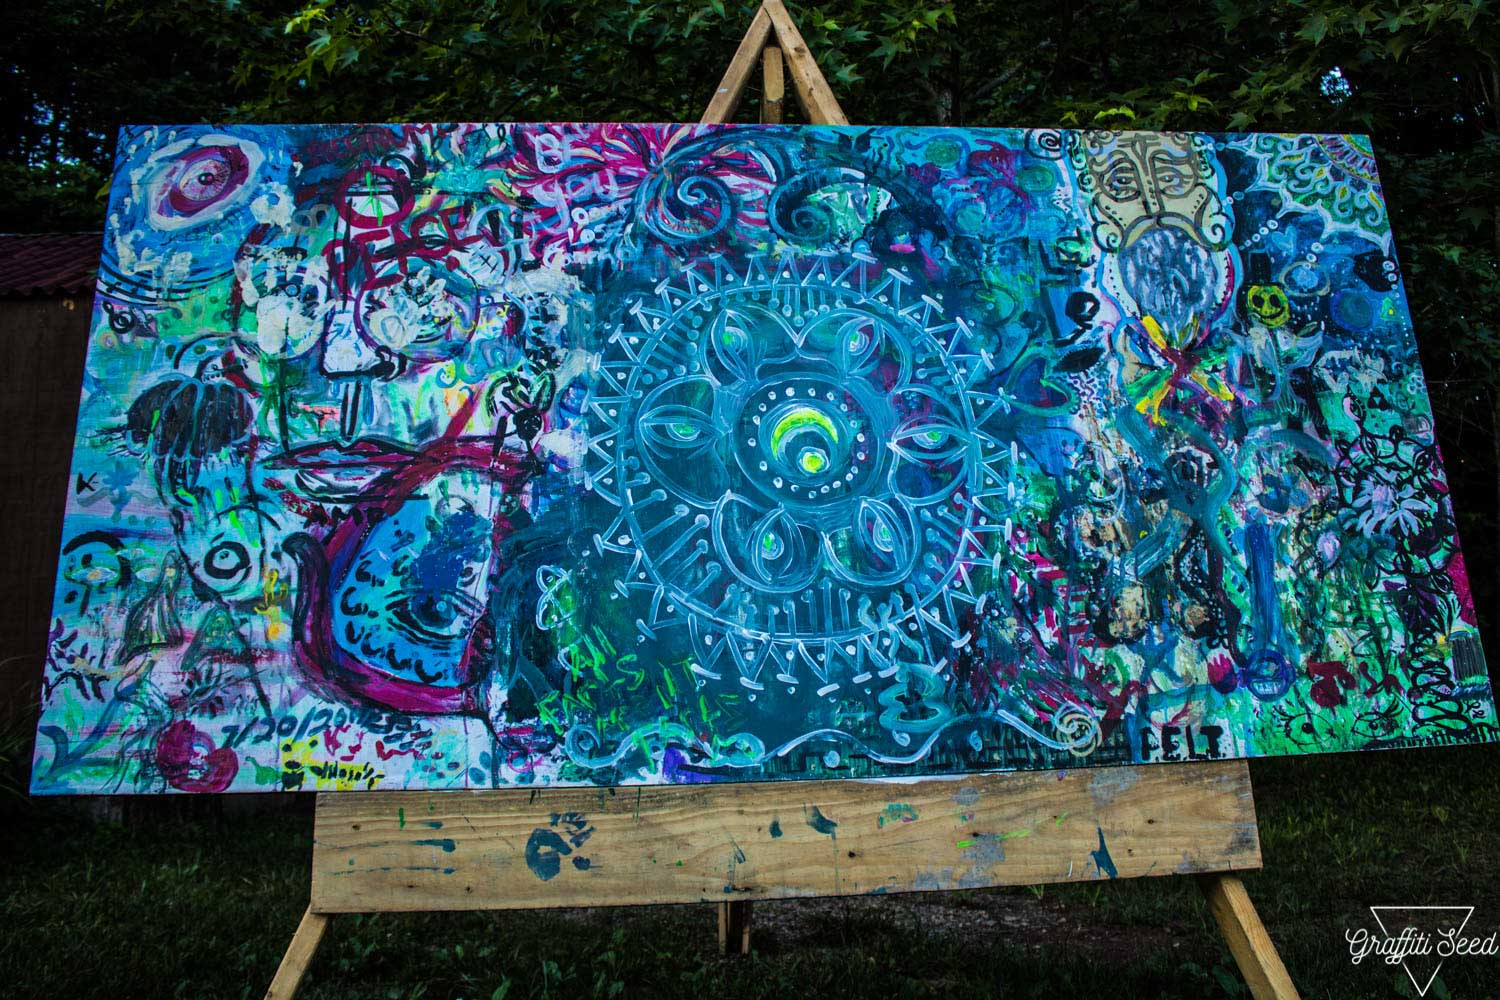 Rootwire Transformational Arts Festival 2018 _ GraffitiSeed.com 97.jpg